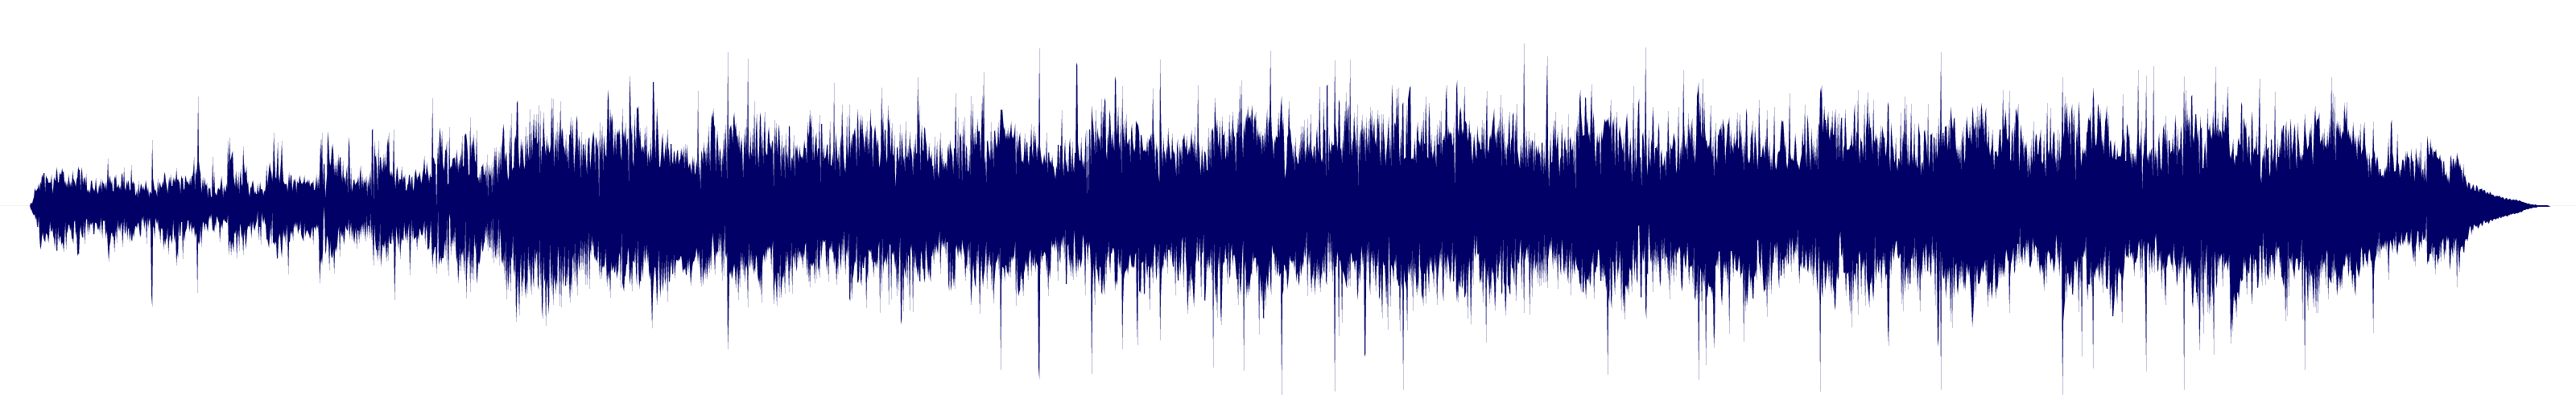 waveform of track #92311